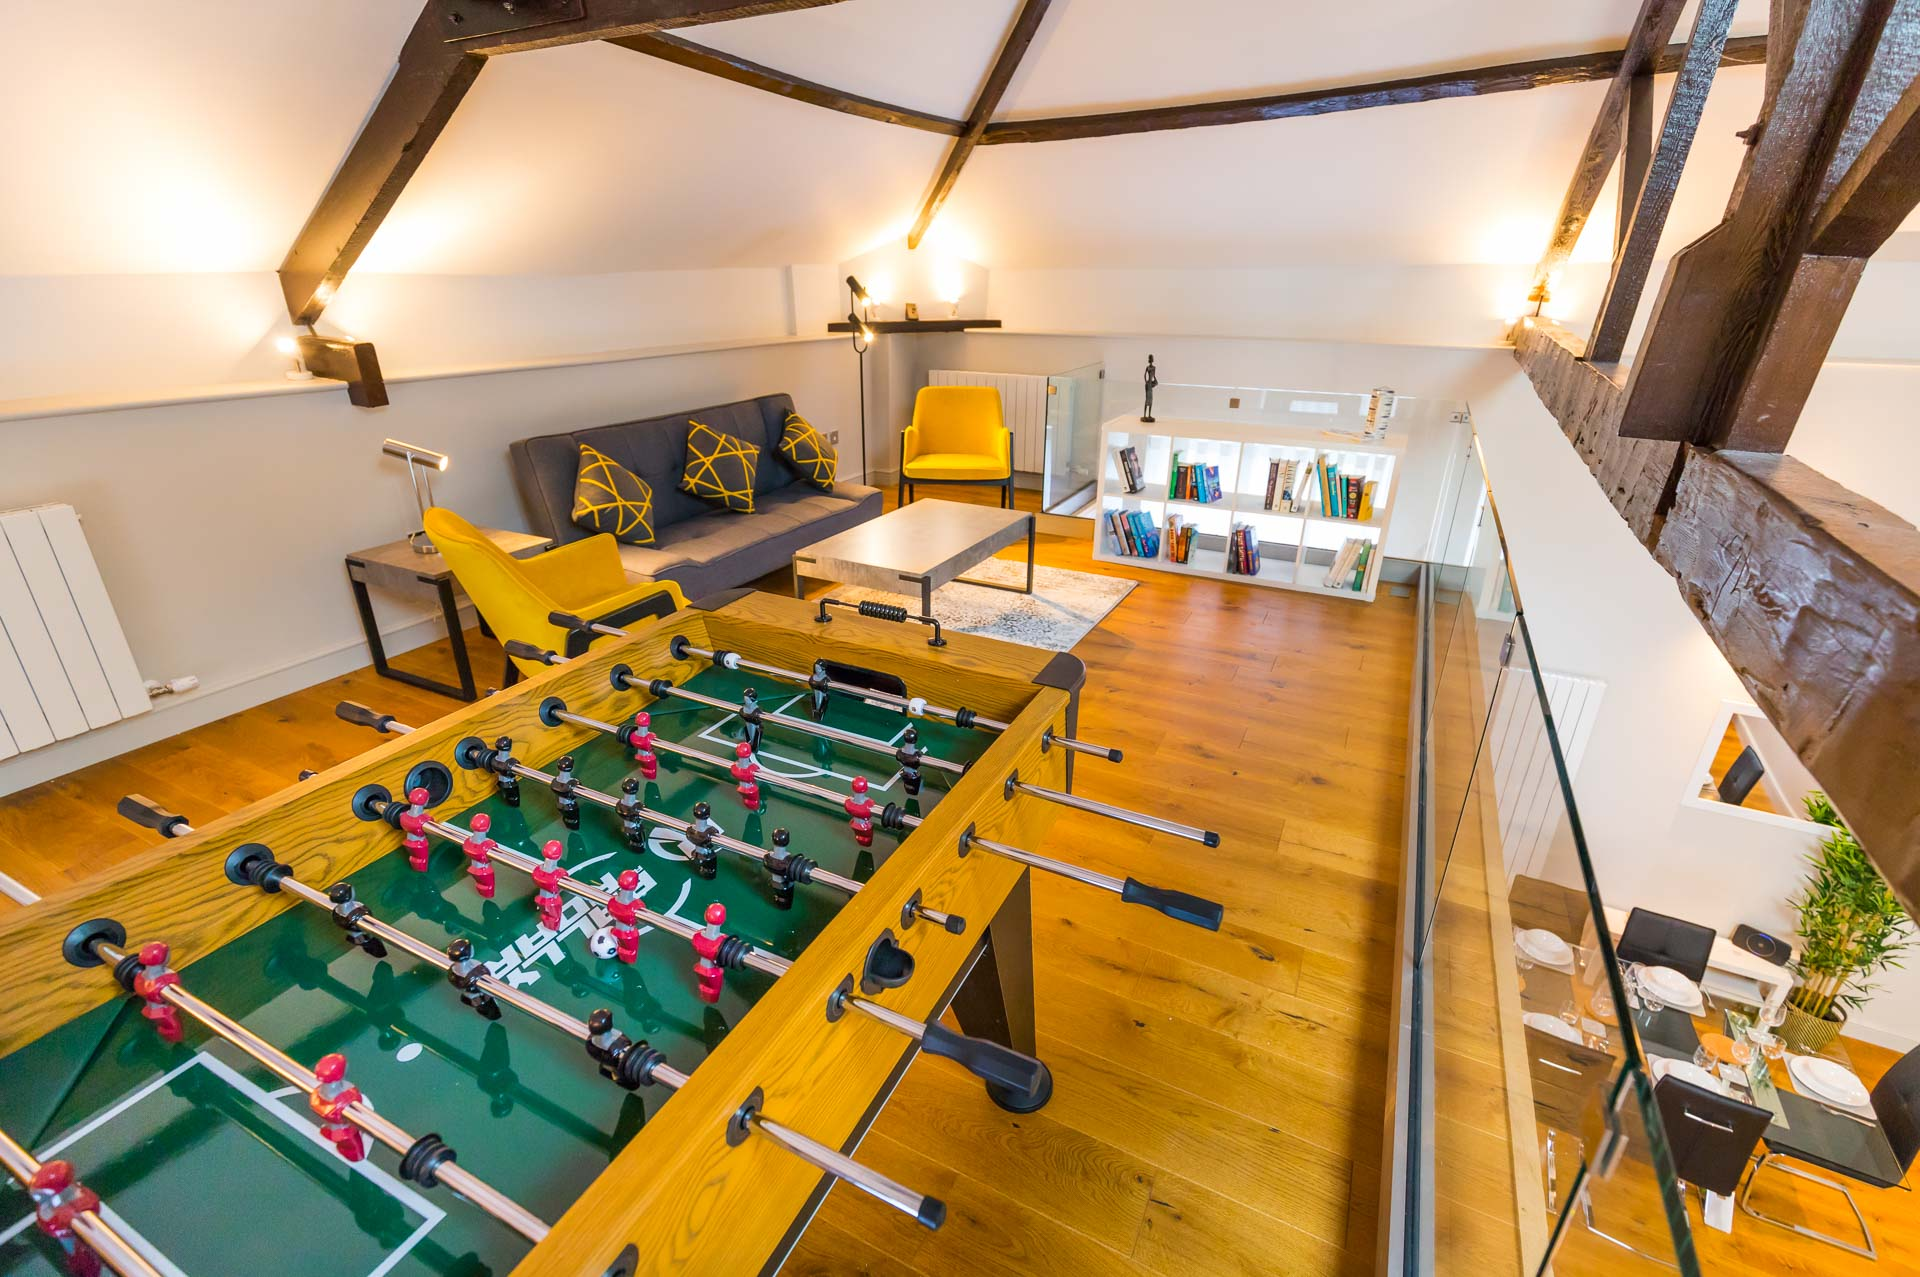 Upper mezzanine level with football table and living space.